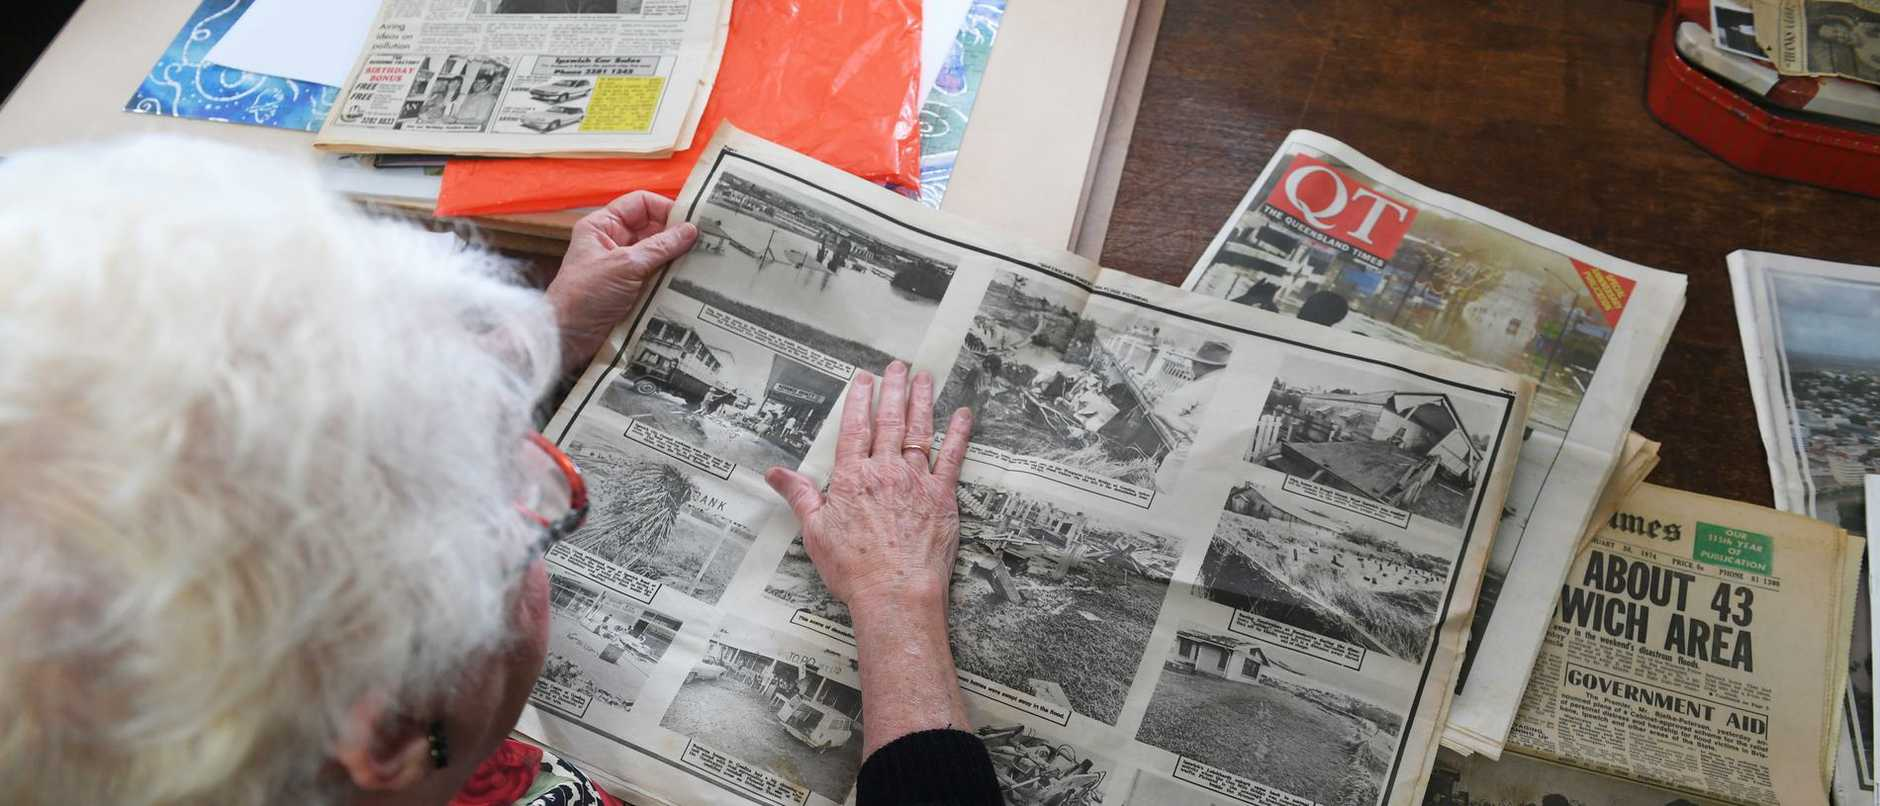 Desley Cronon talks about The Queensland Times and shares some old newspapers she has kept from the 1974 floods.